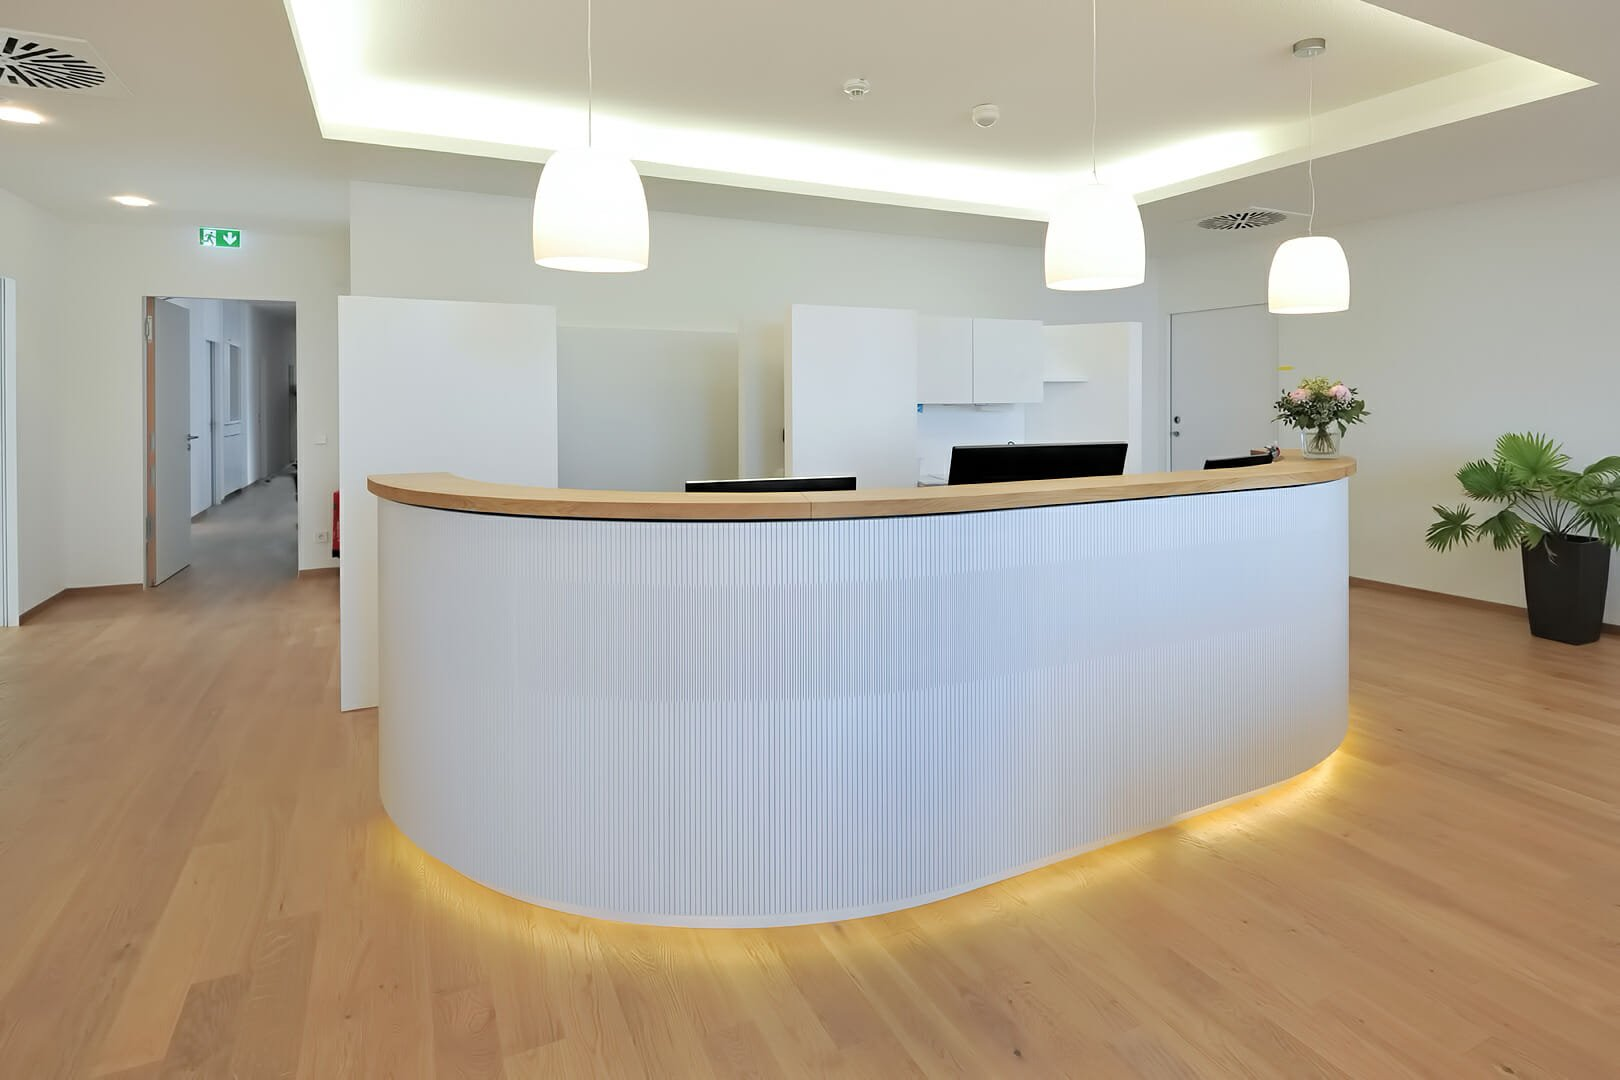 curve wall using as reception desk for patients